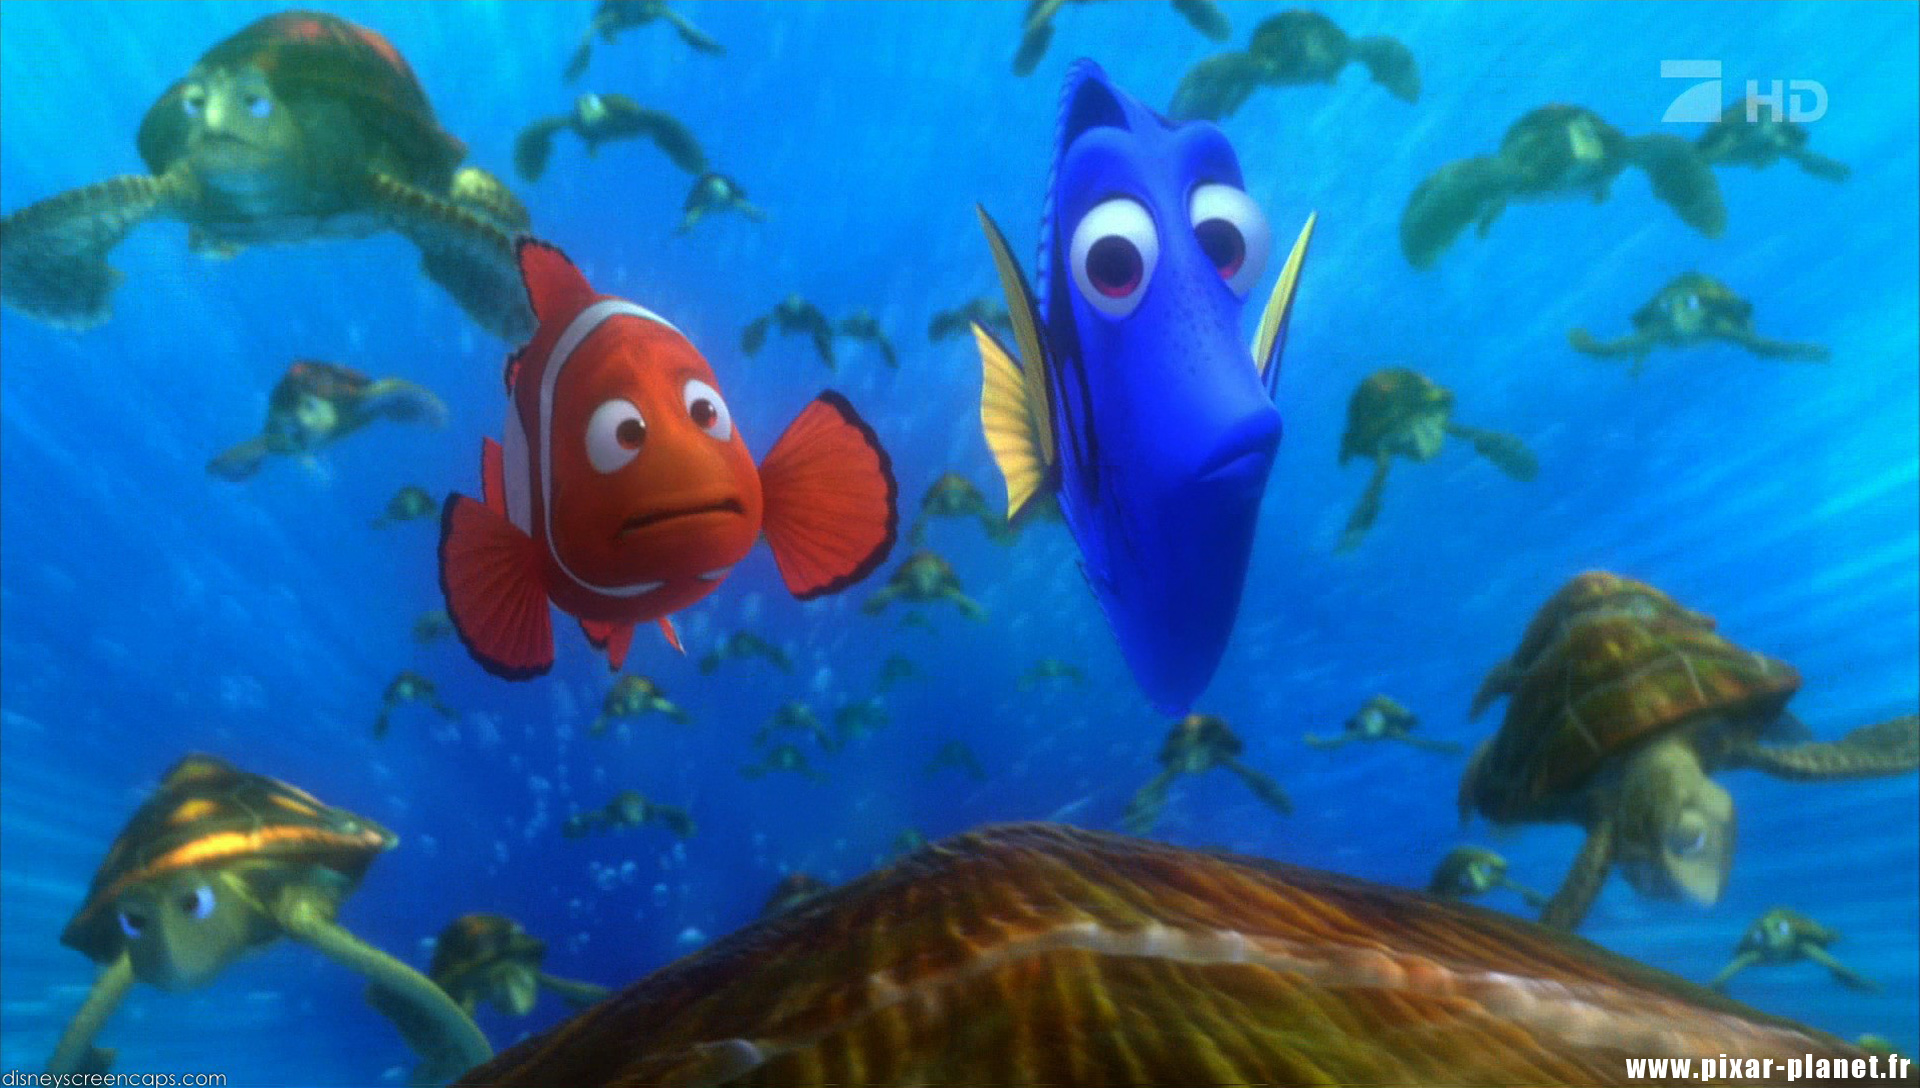 "Dory Quotes Quotes From ""Finding Nemo"" Pixarplanet.fr"